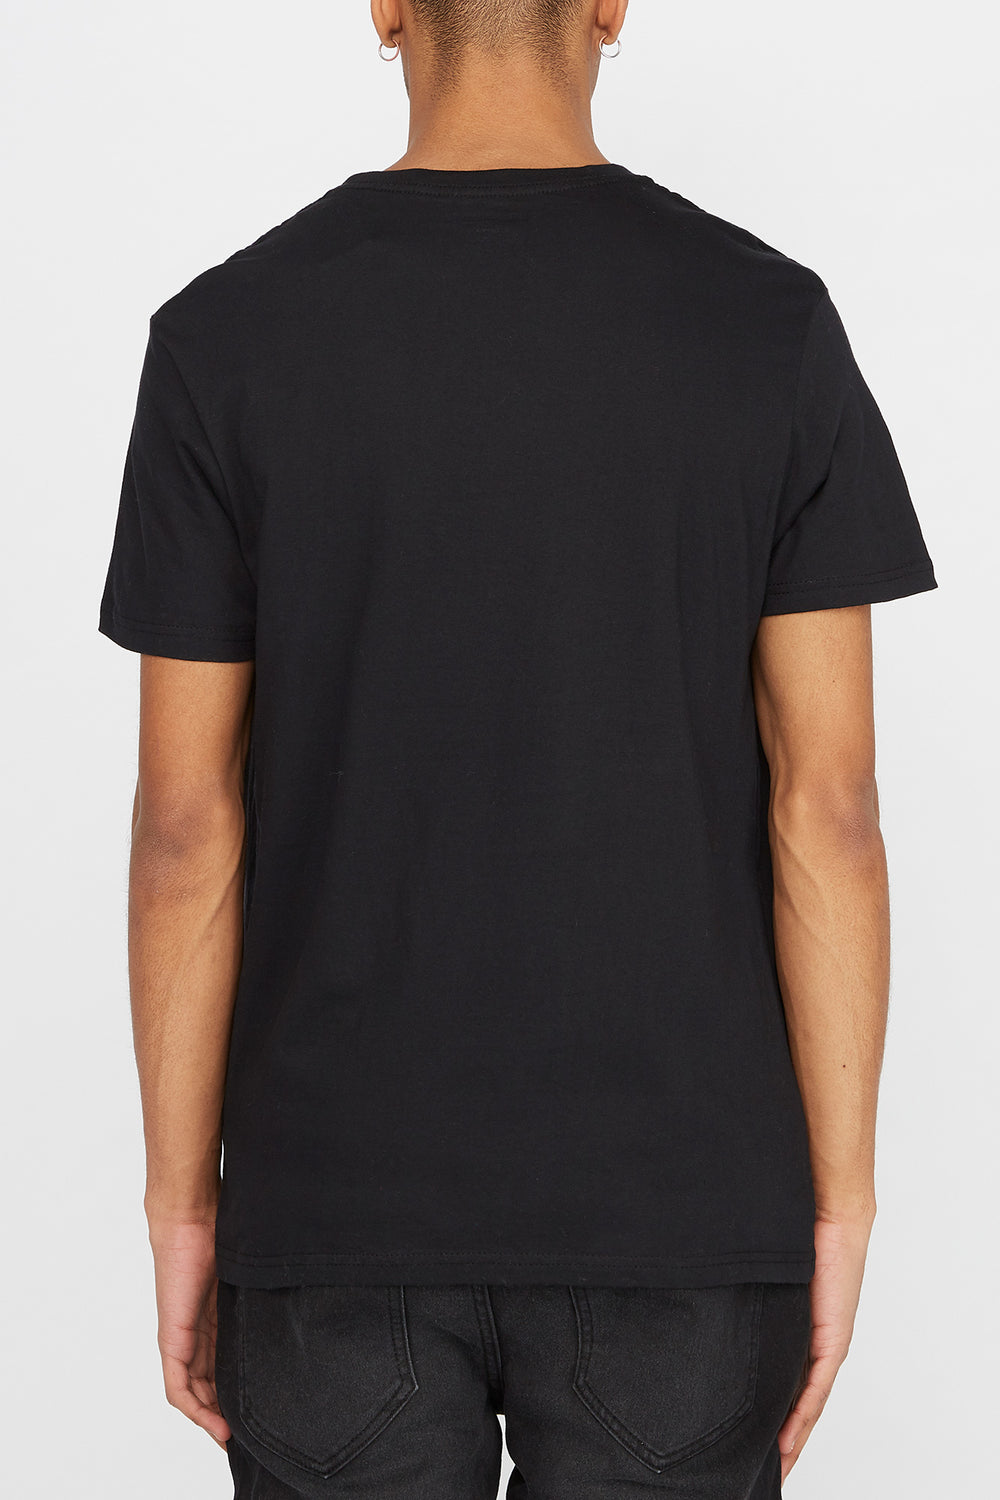 Zoo York Mens Skate Spot T-Shirt Black